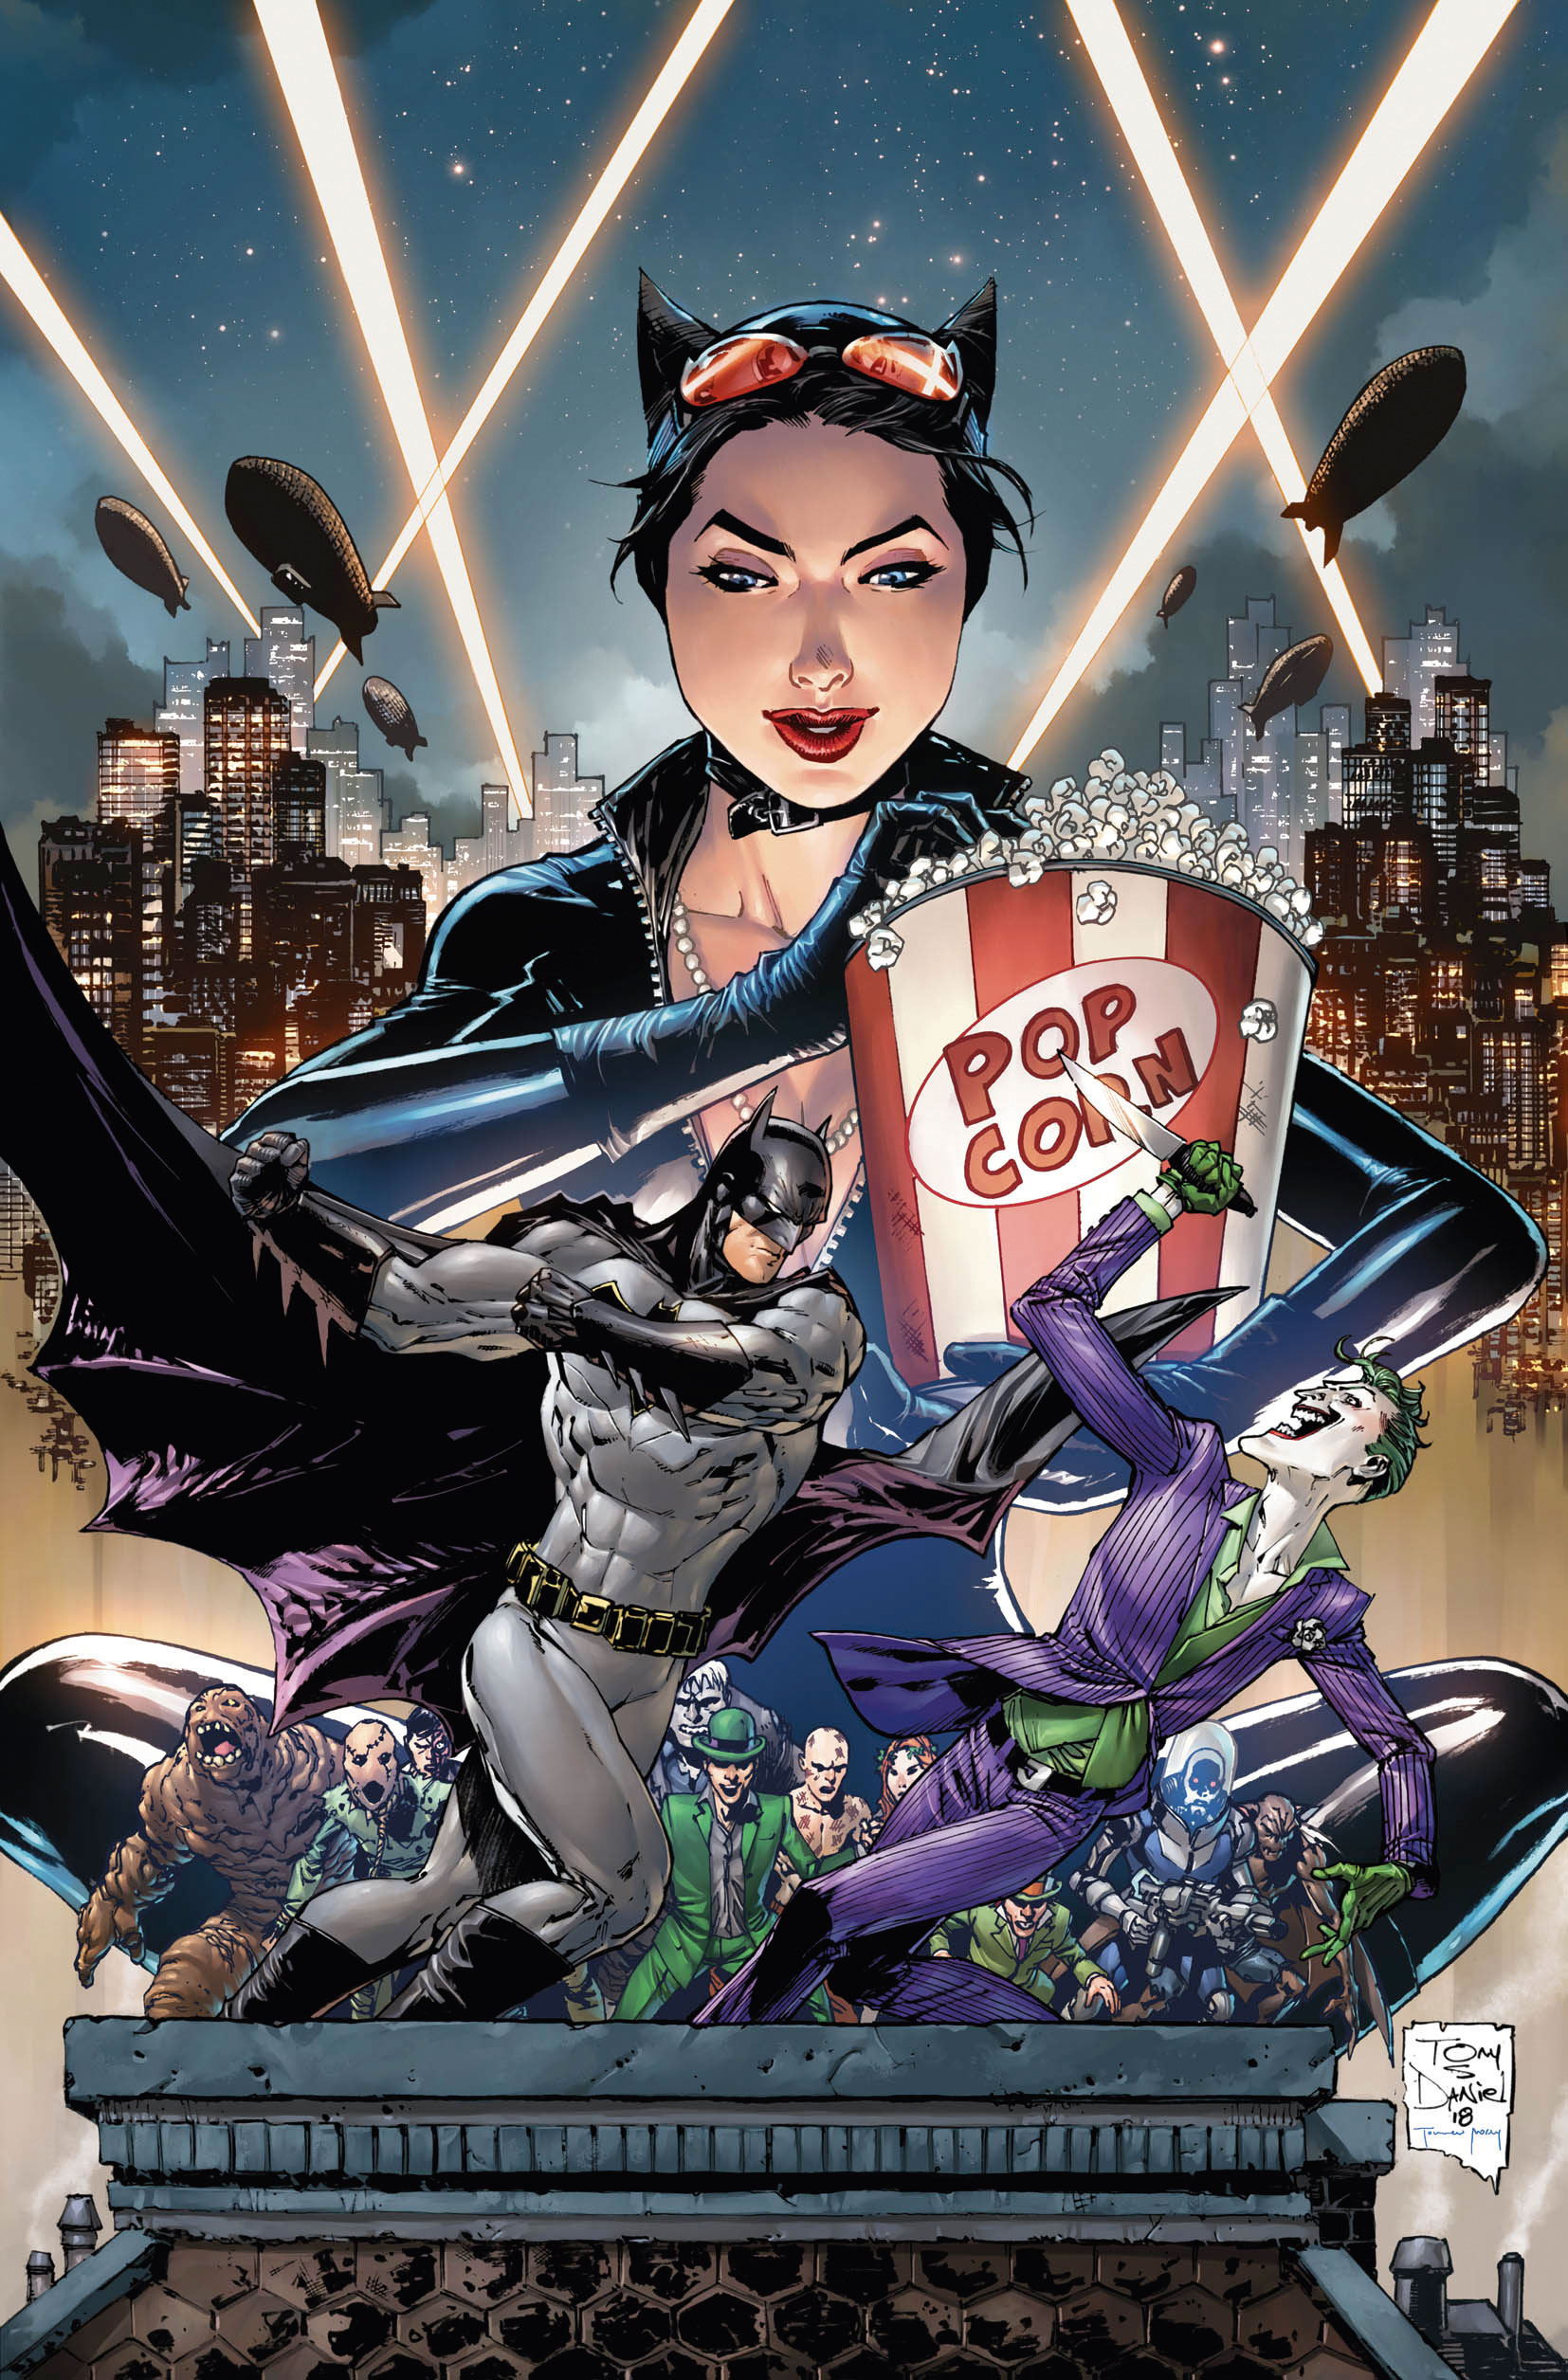 Catwoman feasts on pop corn as she watches Batman fight the Joker